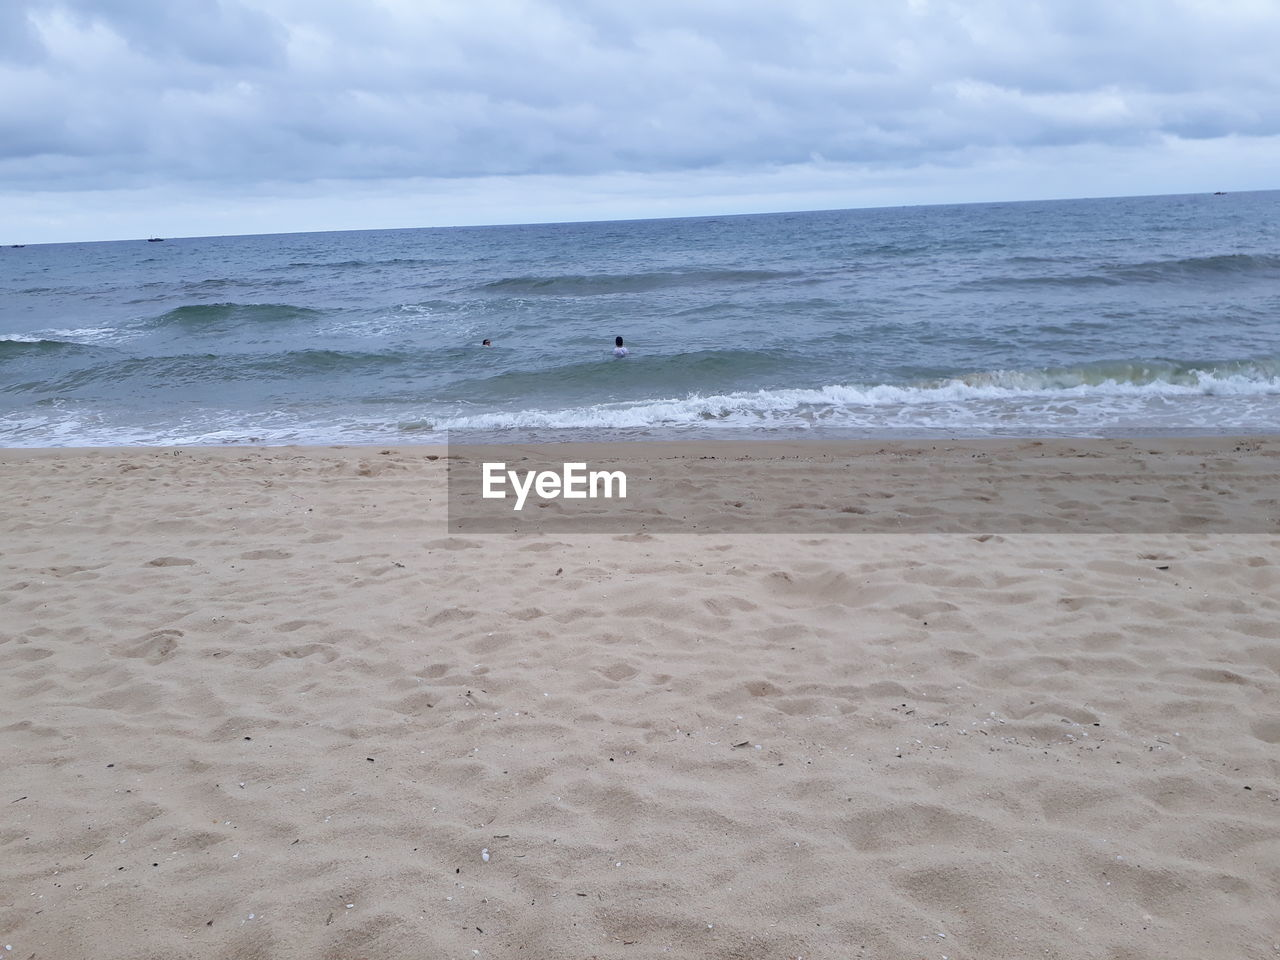 sea, beach, horizon over water, nature, water, sky, beauty in nature, tranquility, sand, scenics, cloud - sky, tranquil scene, day, wave, outdoors, vacations, no people